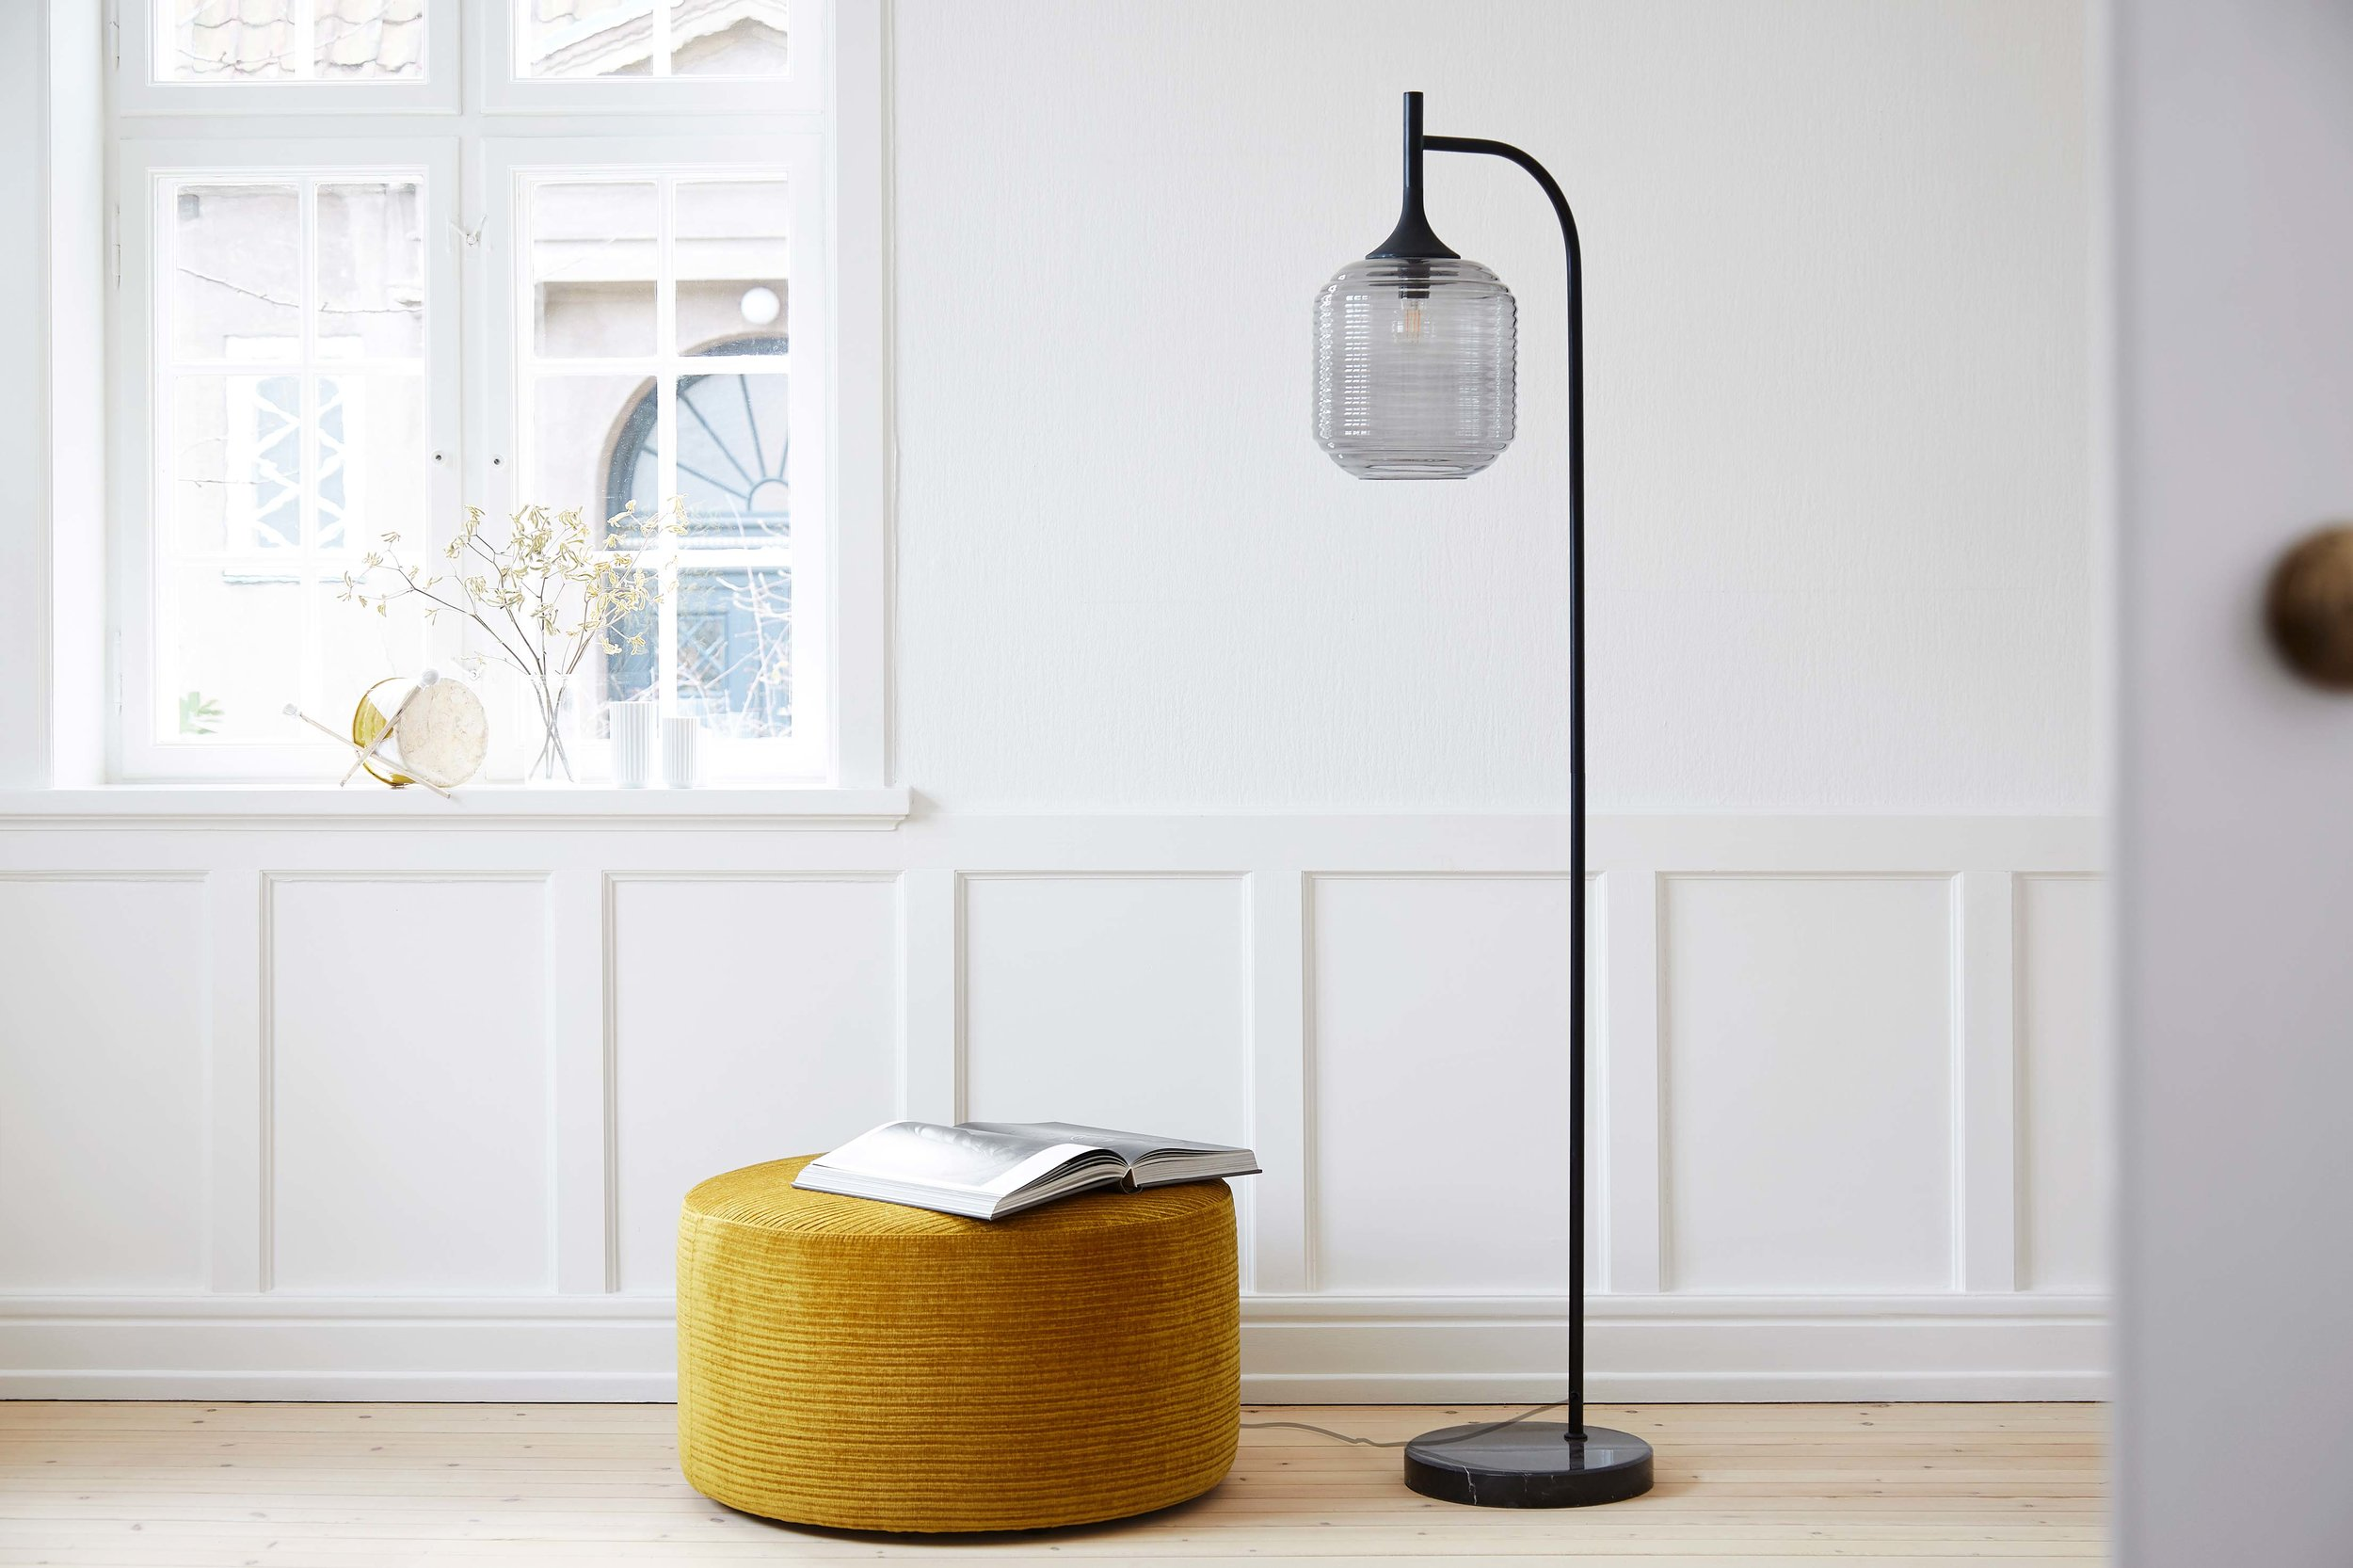 Honey-floor-lamp-black-matt-smoke-glass---lifestyle-Teglgaardsvej-63544.jpg